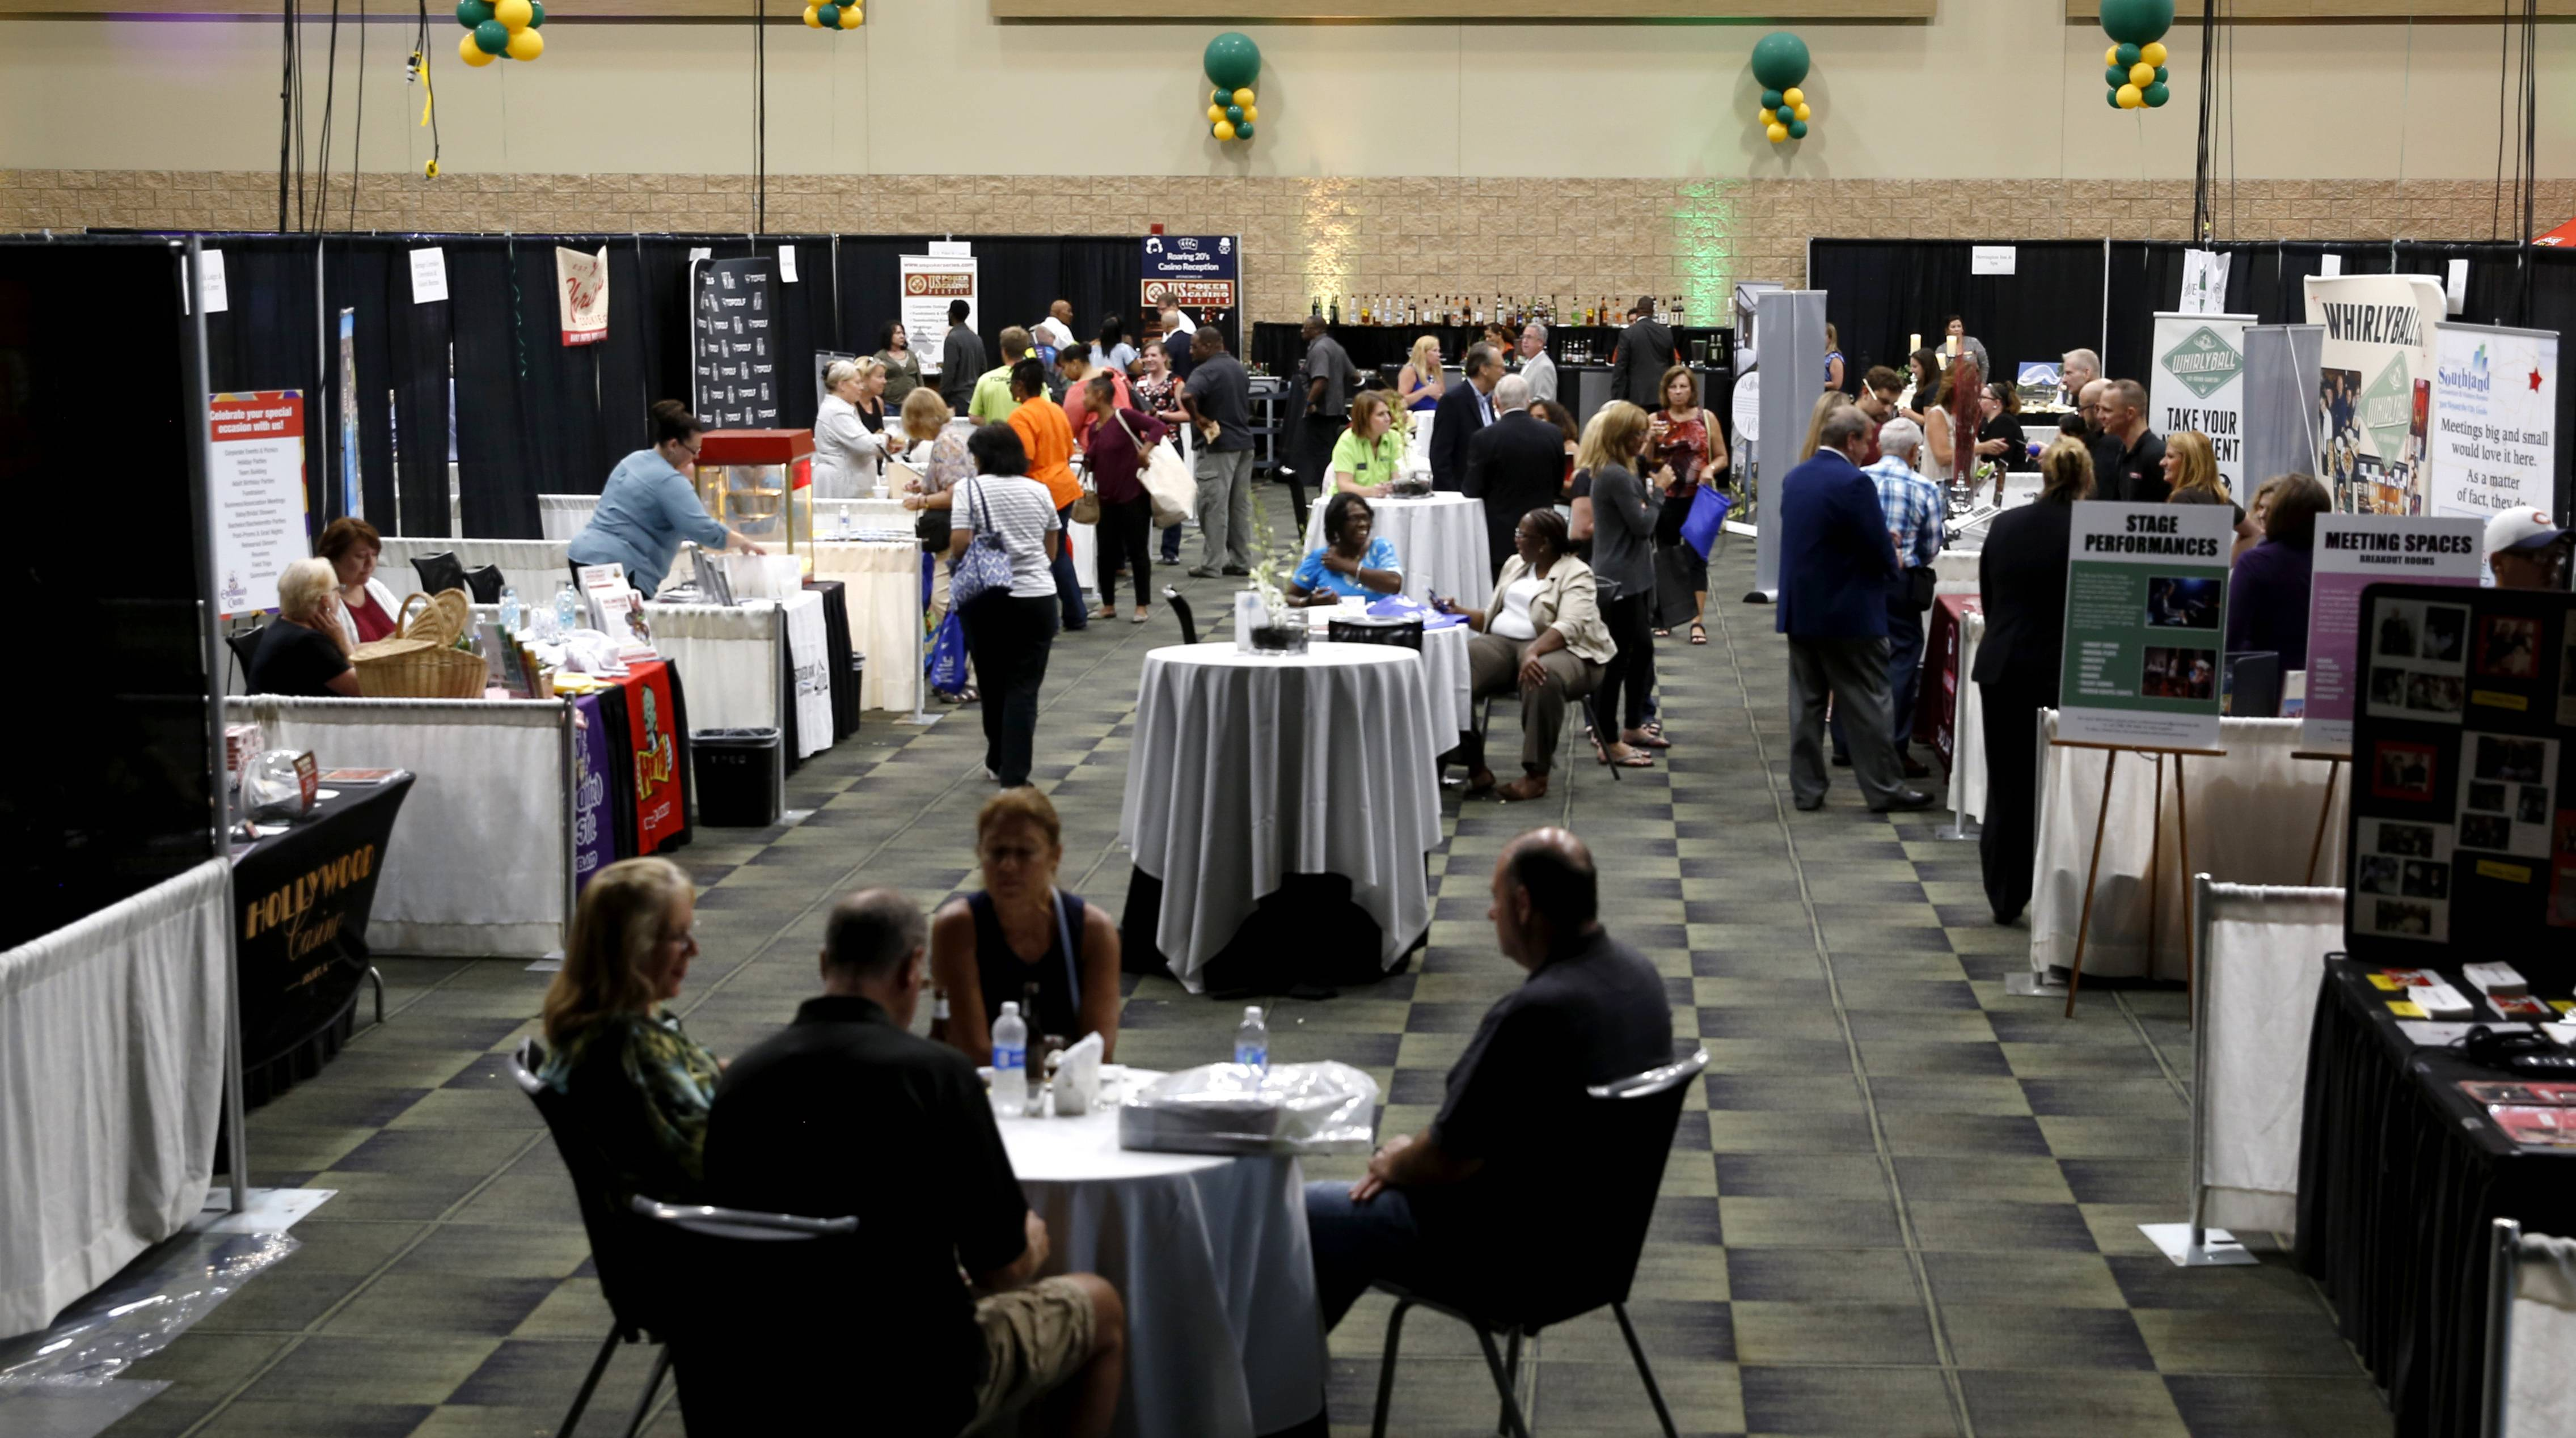 DanielWhite/dwhite@dailyherald.comThe BizLedger Hospitality Expo at the Tinley Park Convention Center served up various business opportunities to the Chicago Southwest communities.